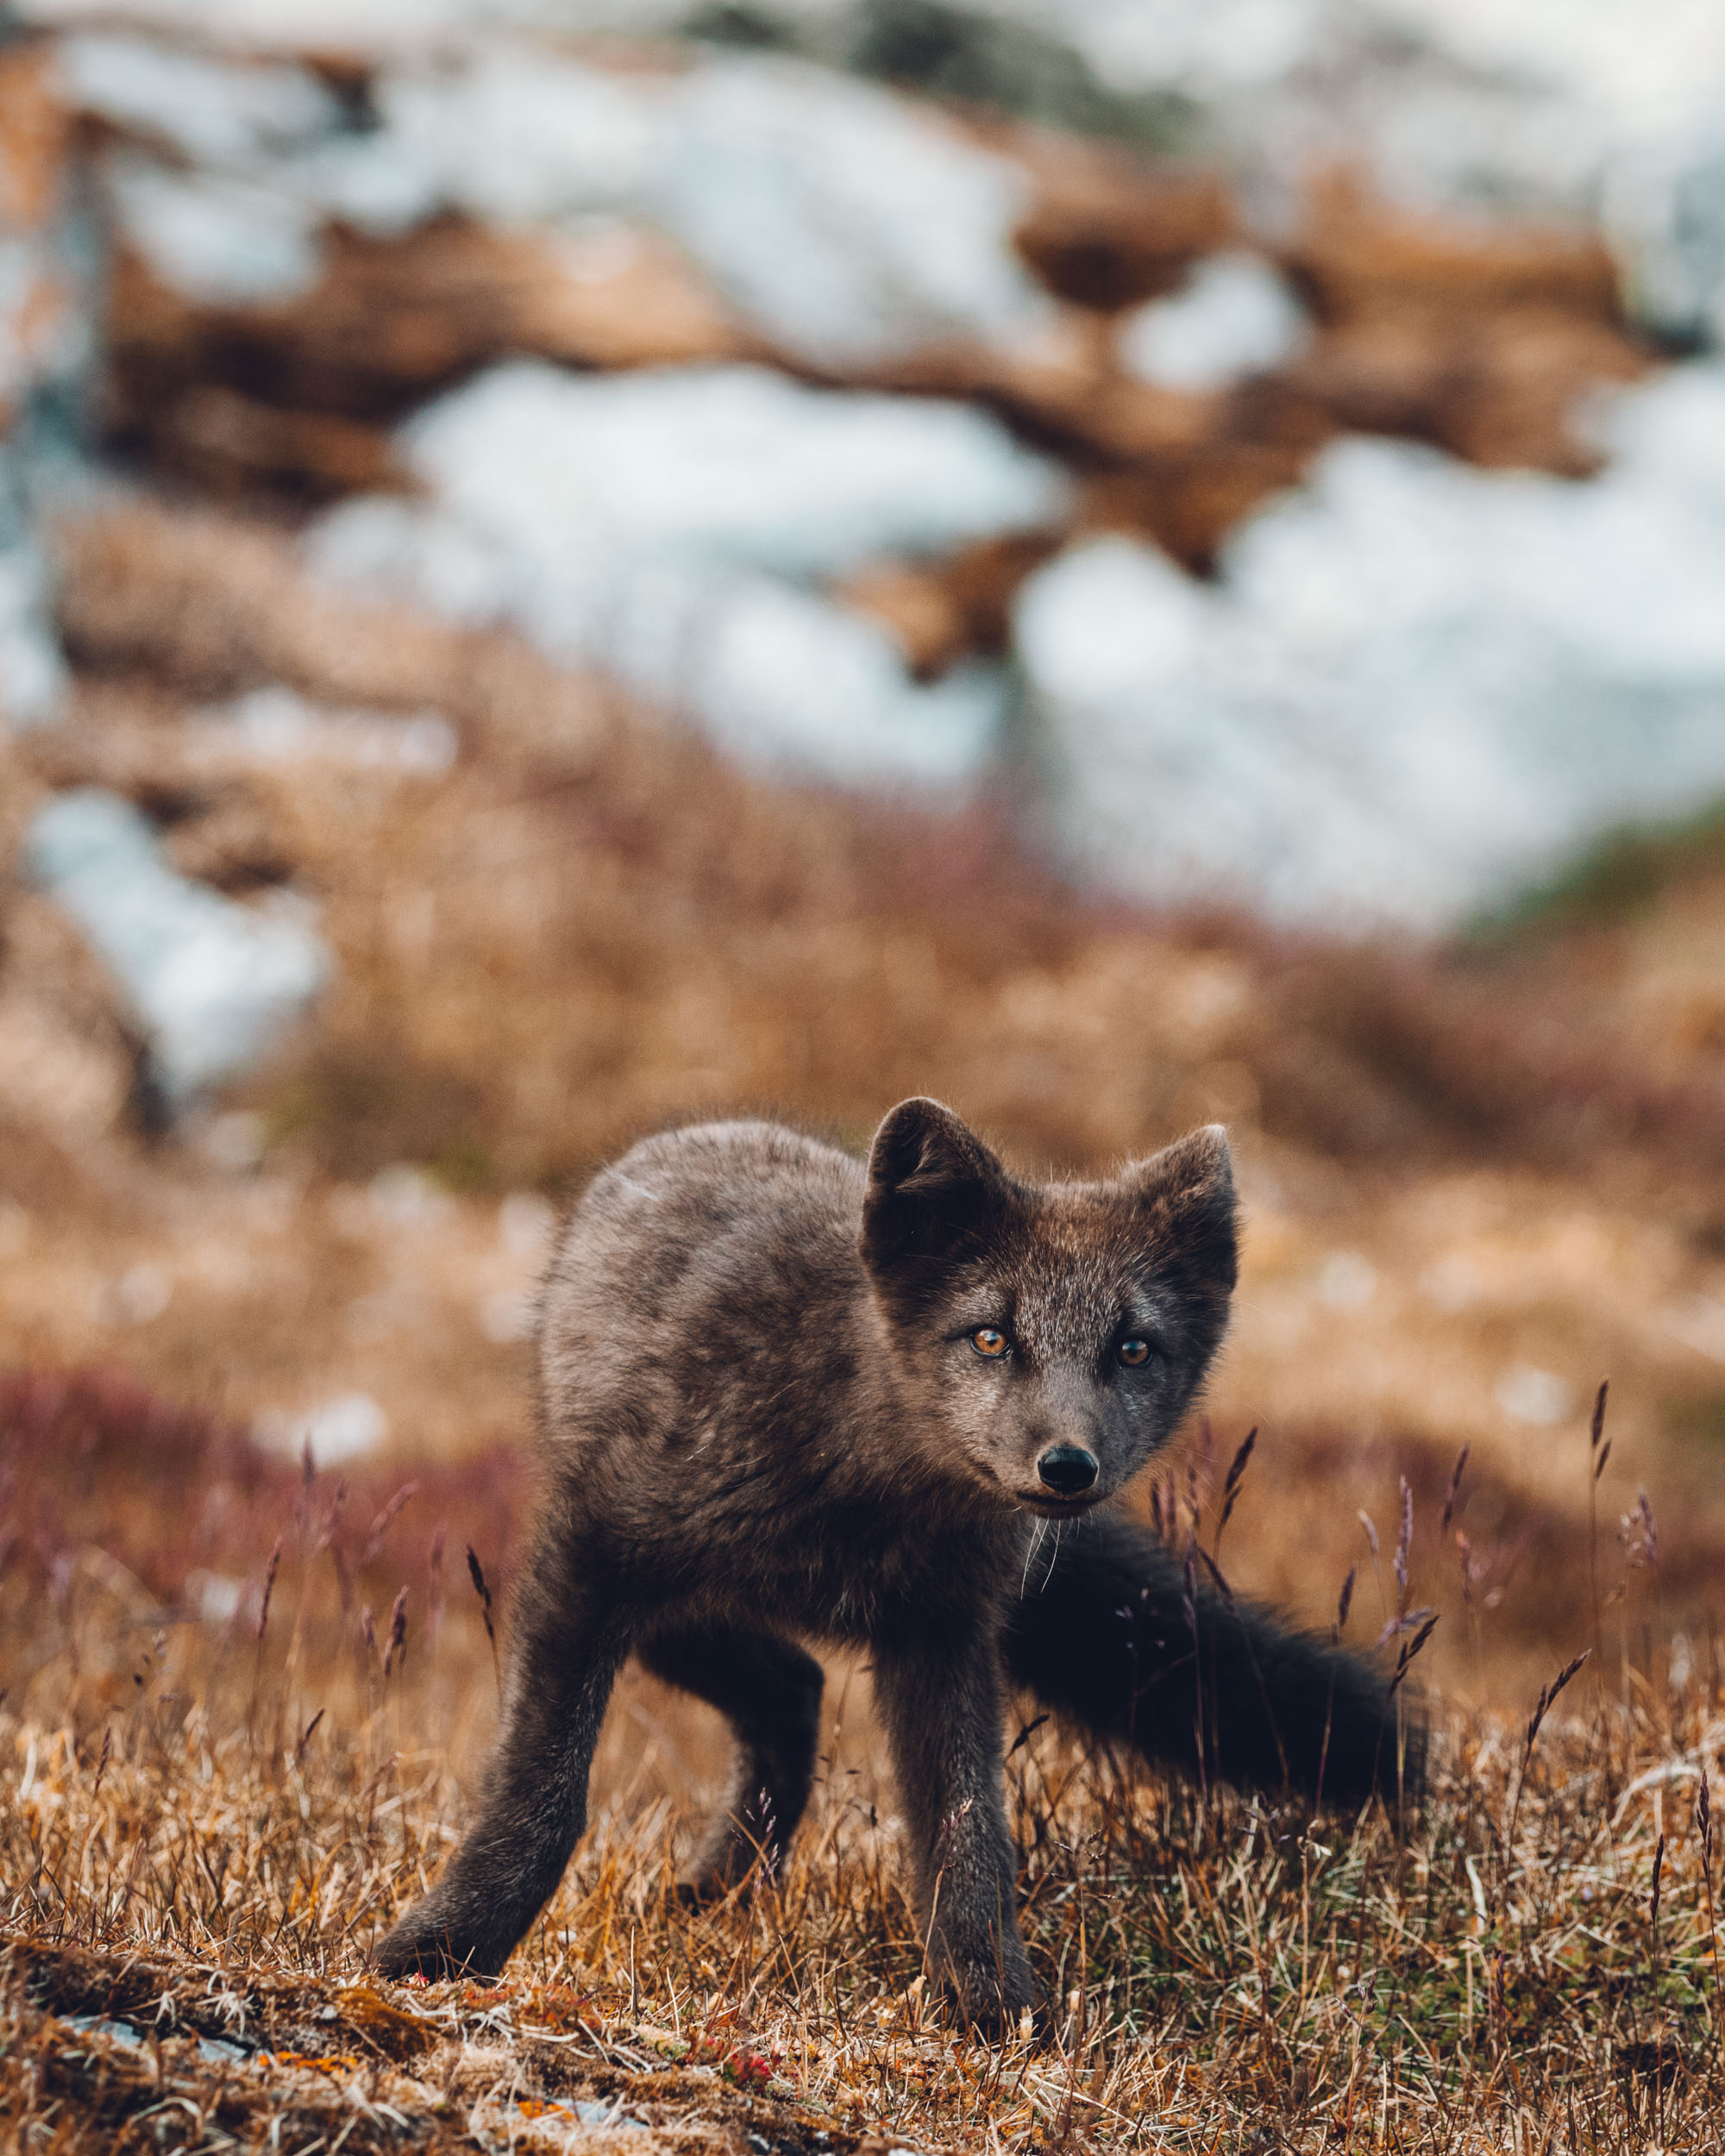 Blue Arctic Fox in Svalbard, Spitsbergen, Norway